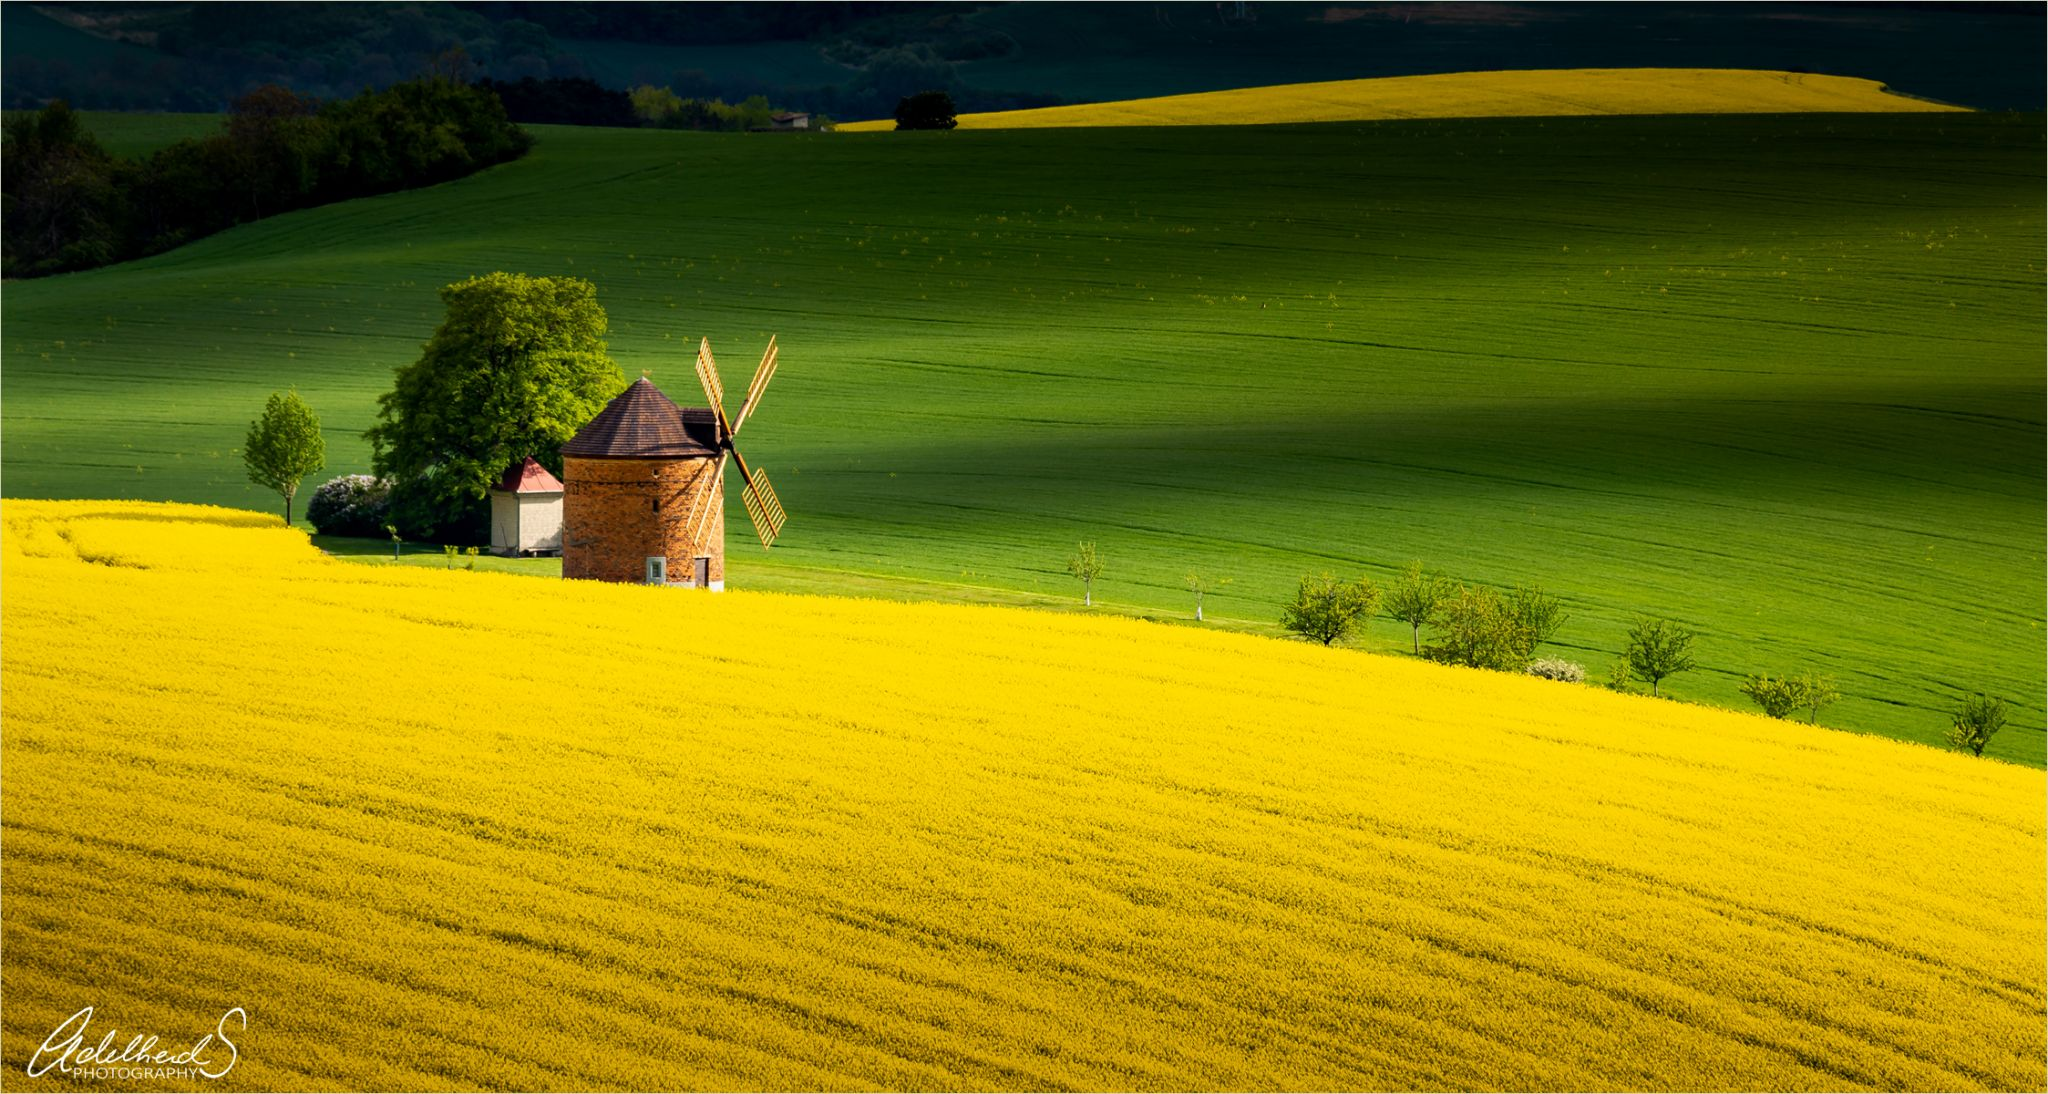 Windmill in southern Moravia, Czech Republic